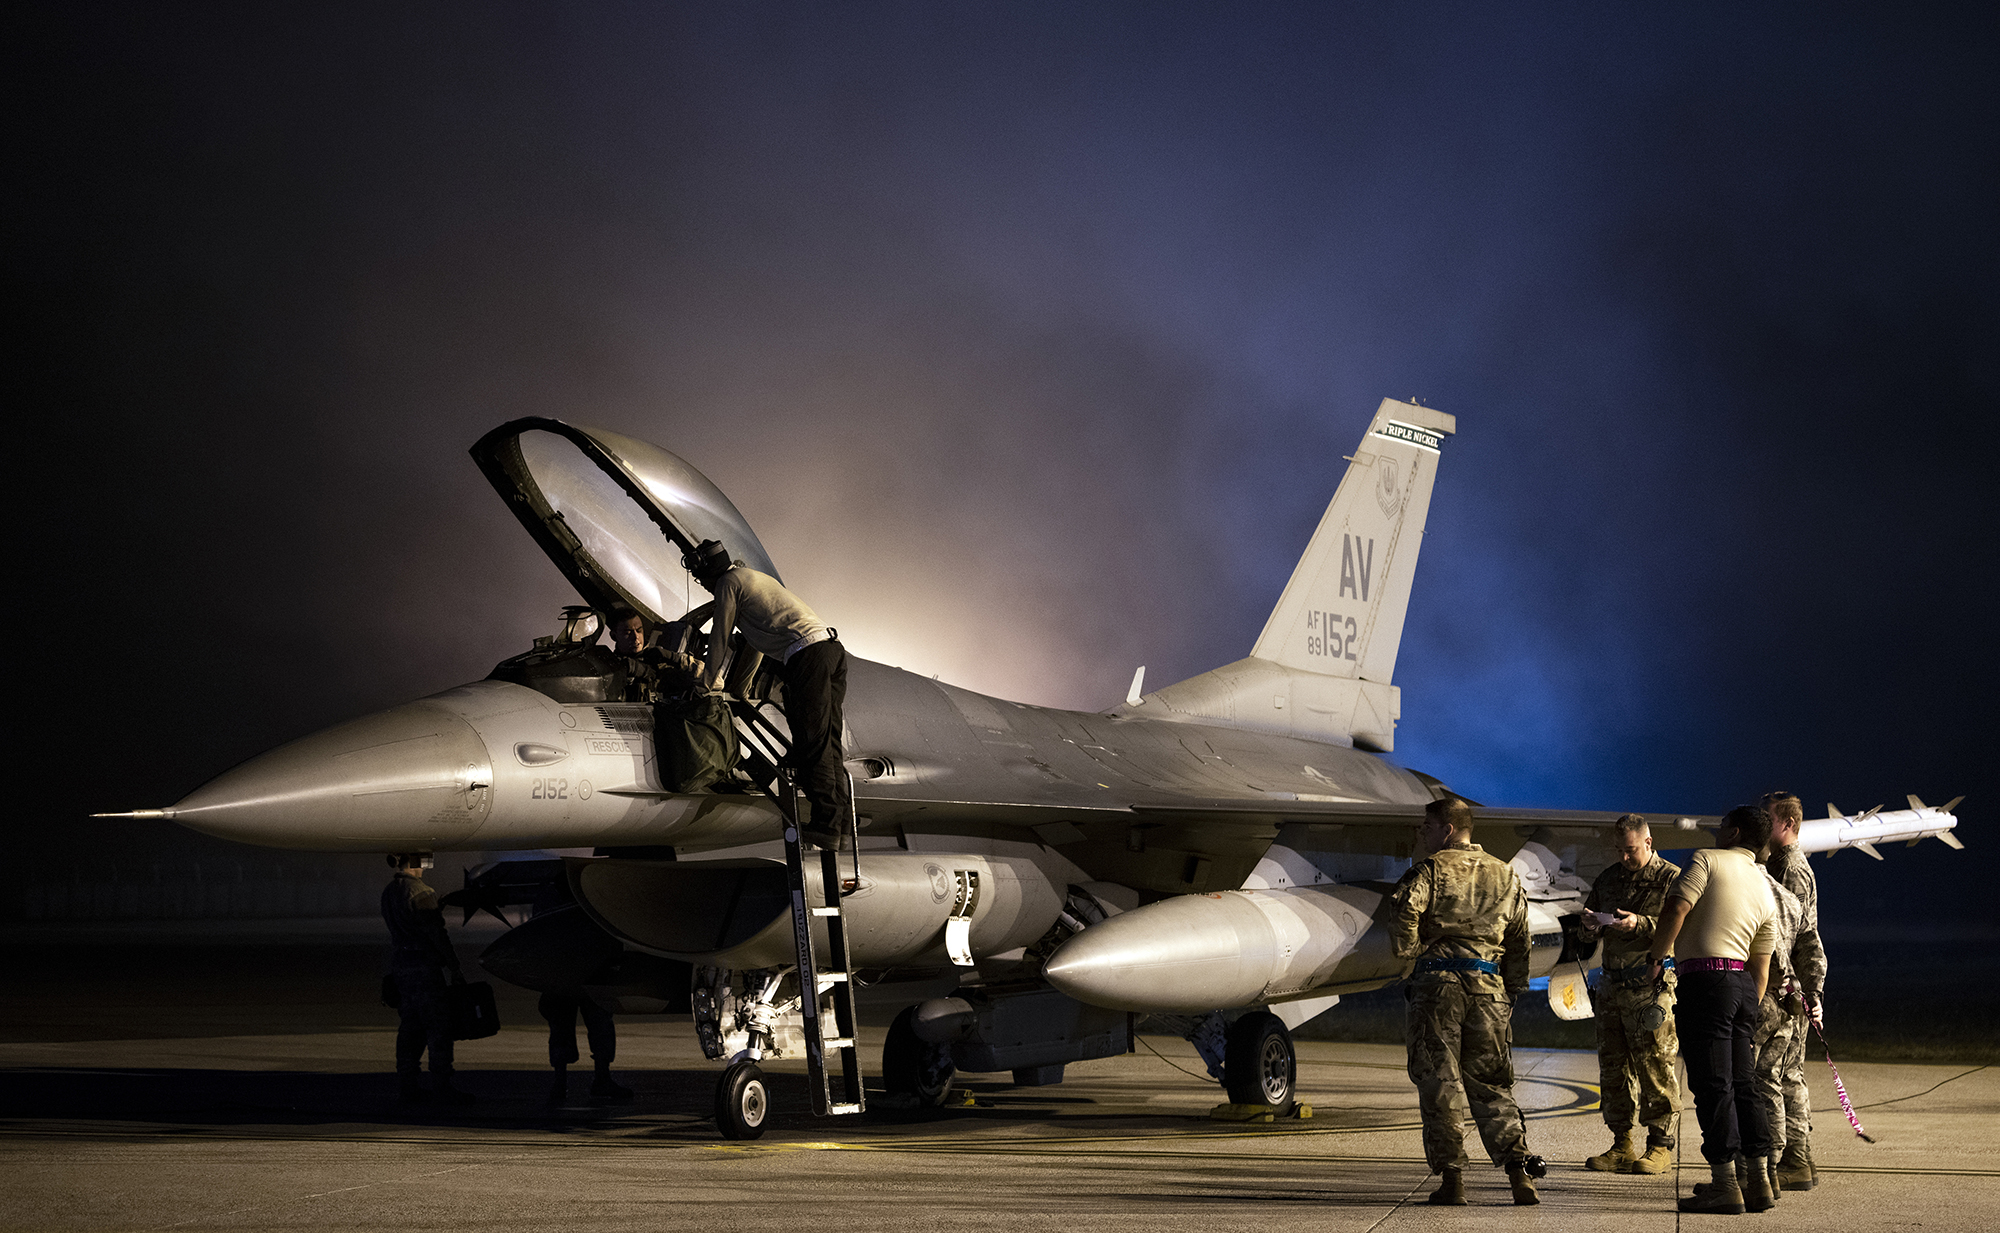 Airmen prepare a 555th Fighter Squadron F-16 Fighting Falcon for takeoff from Aviano Air Base, Italy, Oct. 28, 2019. (Airman 1st Class Caleb House/Air Force)